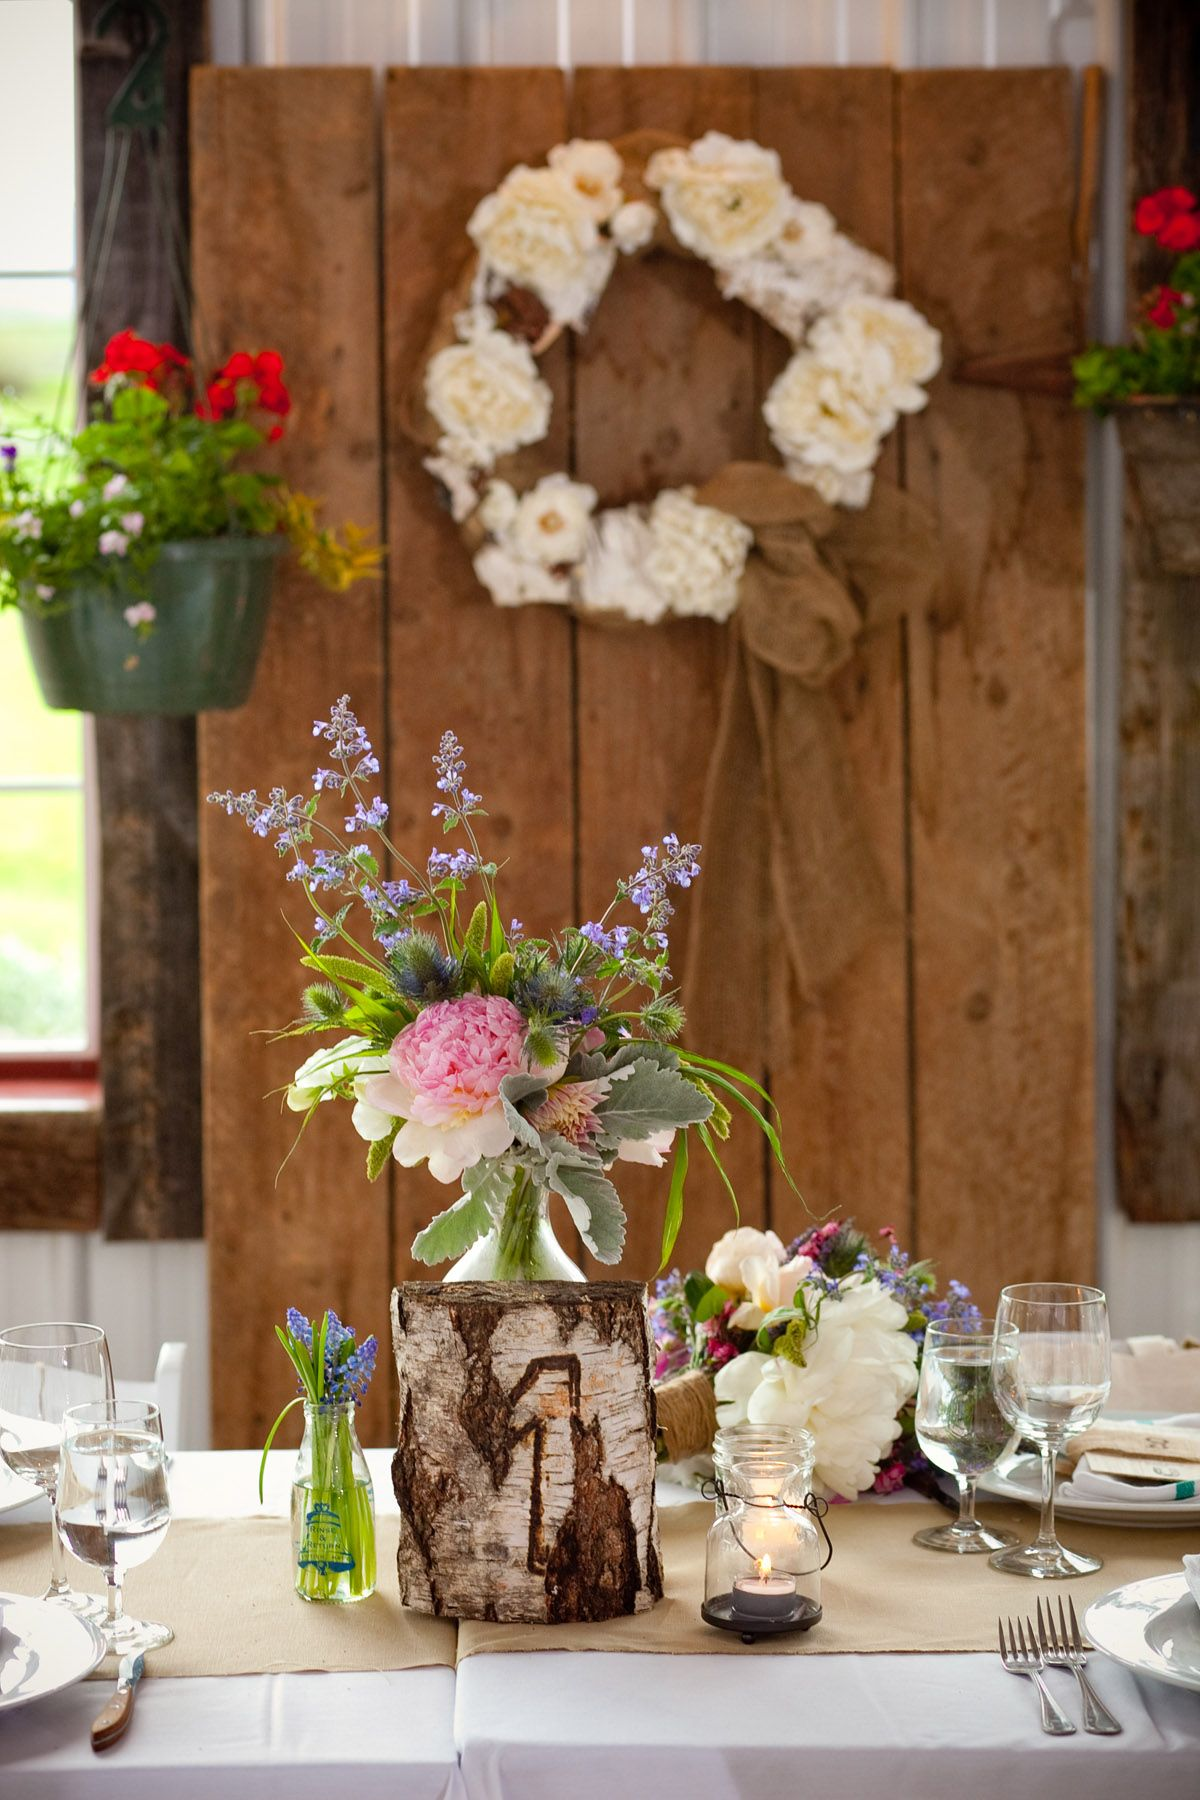 Diy rustic wedding decor ideas  Homemade Wedding Reception Centerpieces  Rustic wedding reception